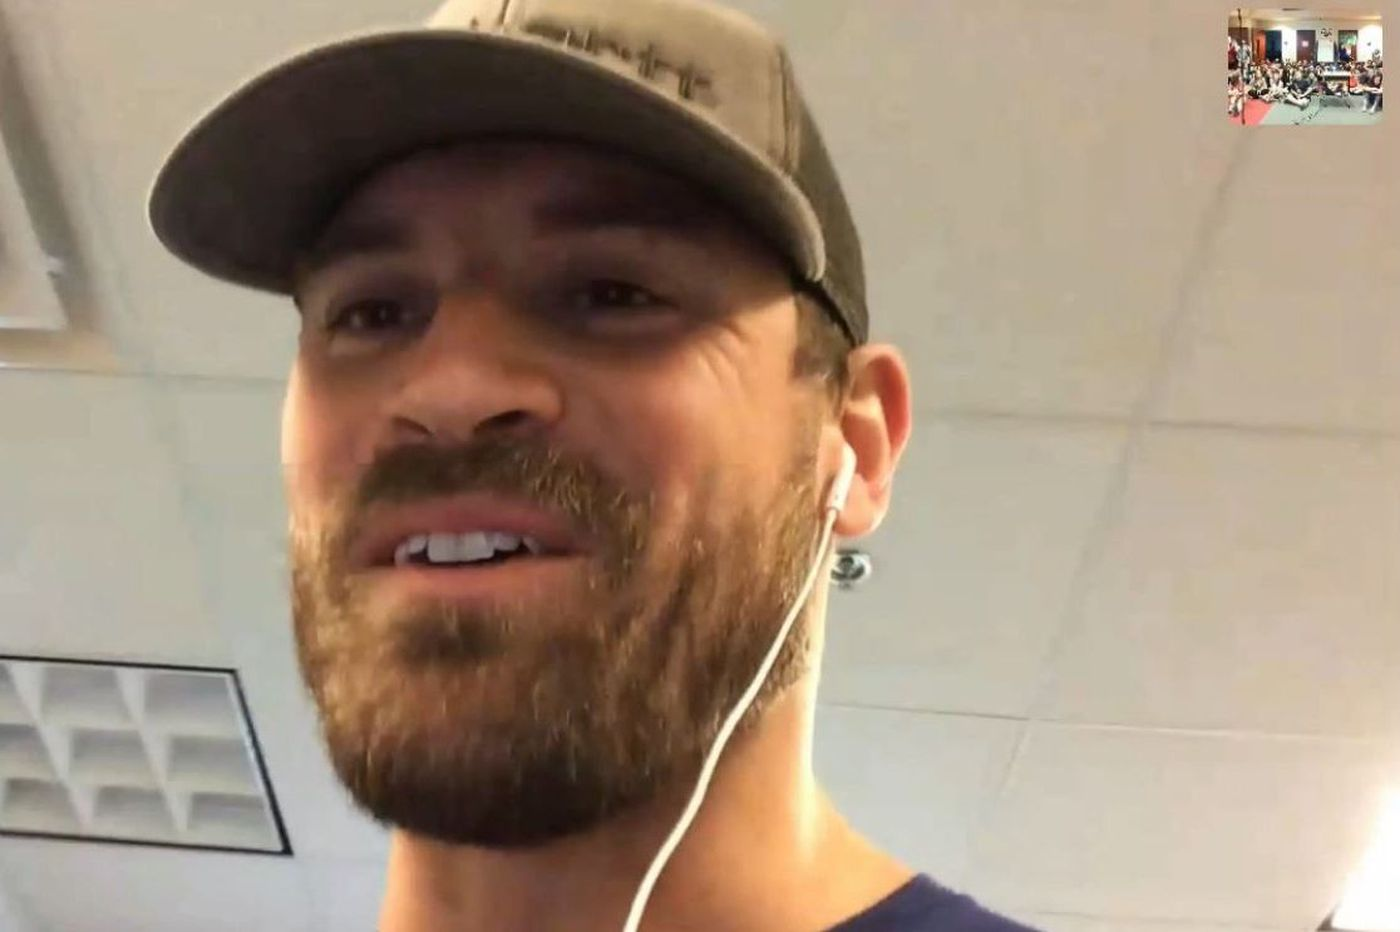 While he wasn't visiting the White House, Eagle Chris Long video-chatted with N.J. 7th graders